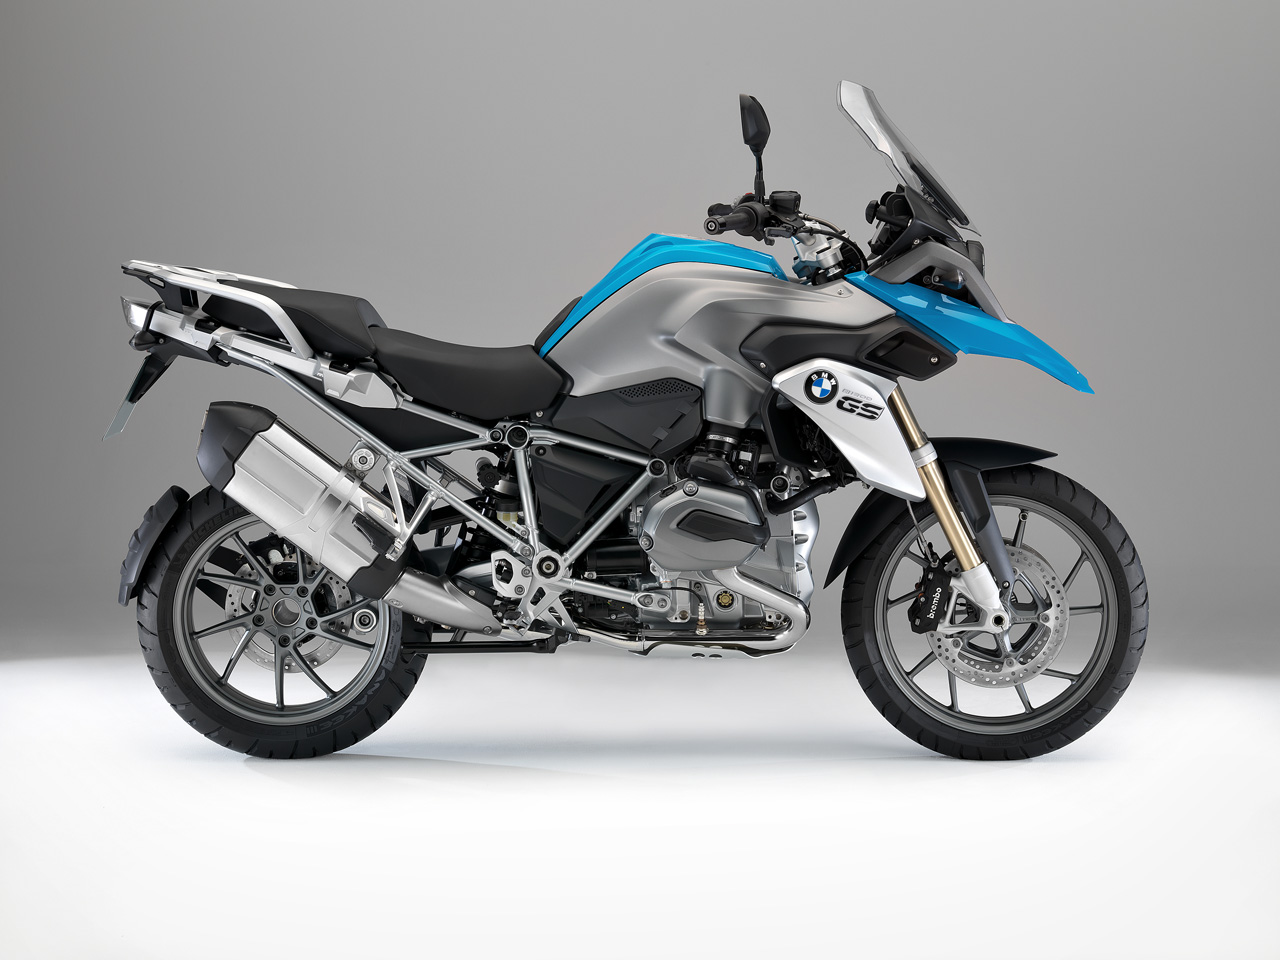 BMW Motorrad USA Announces Official R 1200 GS Pricing and Packages